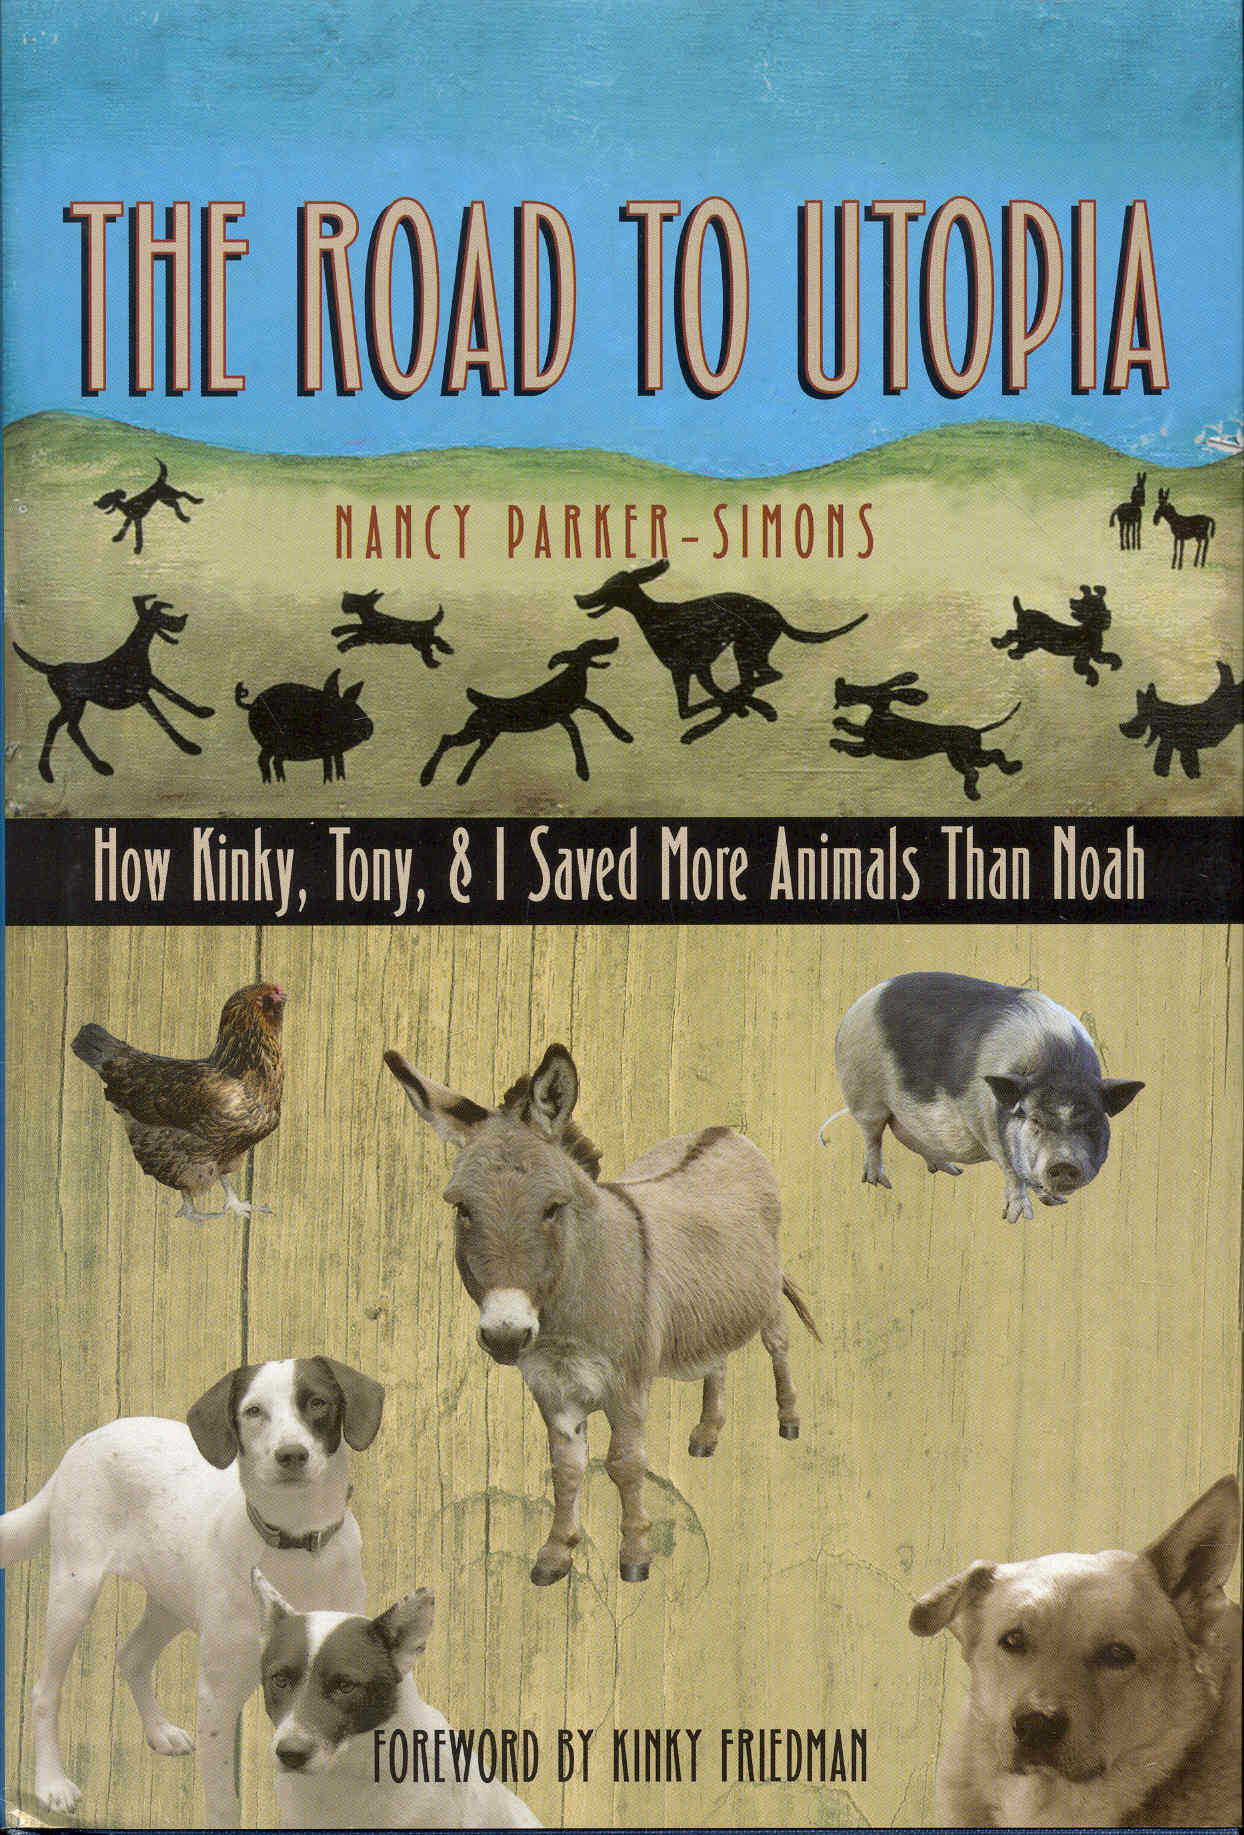 Image for The Road to Utopia: How Kinky, Tony, & I Saved More Animals Than Noah